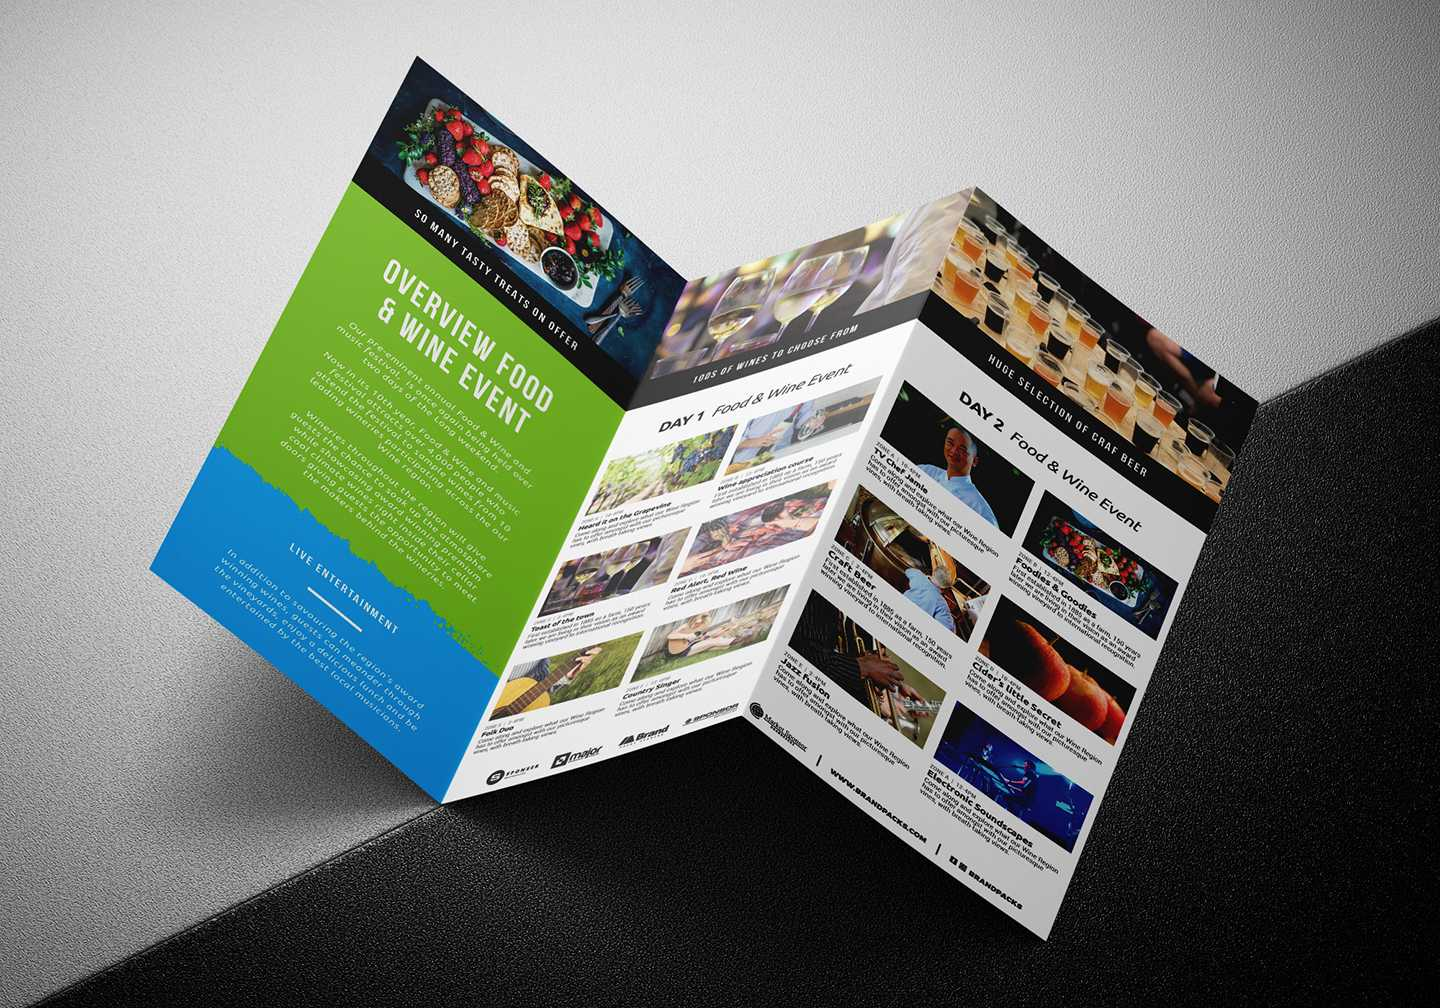 Free Tri Fold Brochure Template For Events & Festivals - Psd For Tri Fold Brochure Template Illustrator